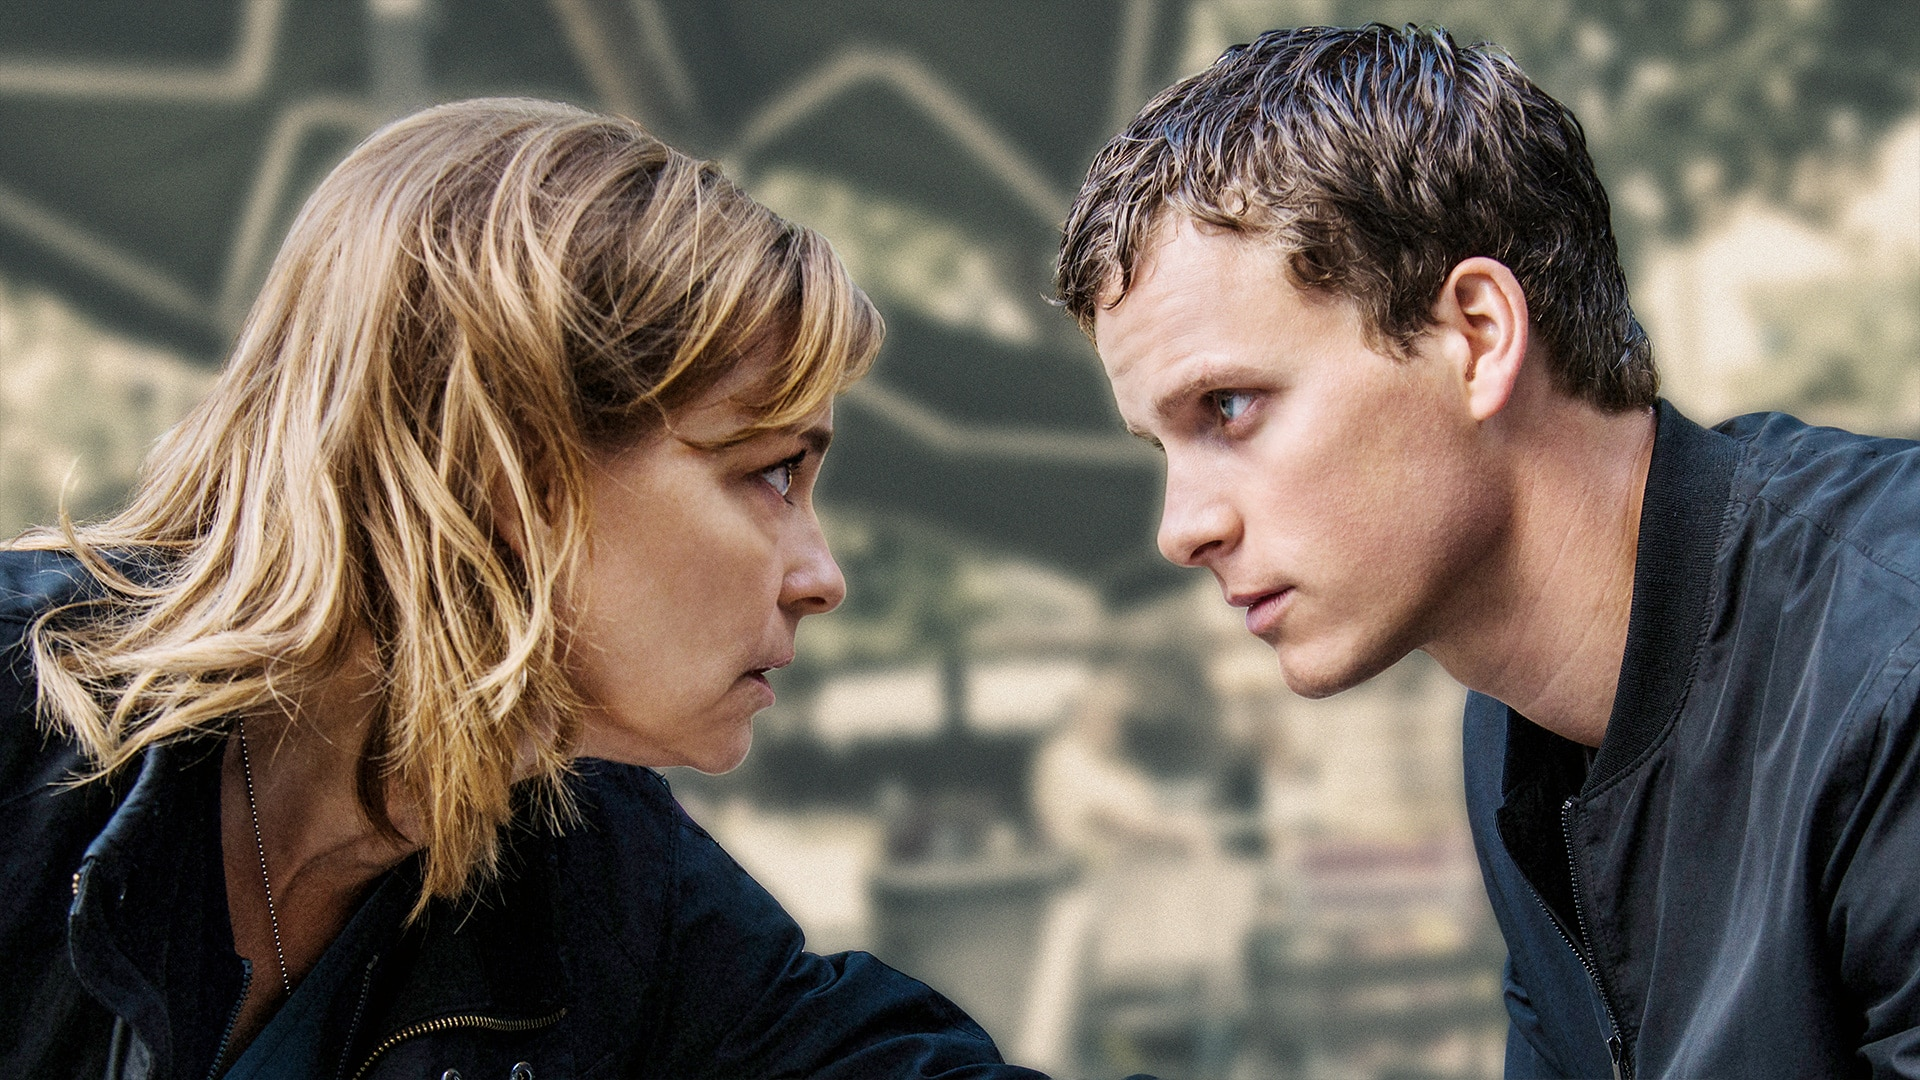 Two characters stare intensely at each other